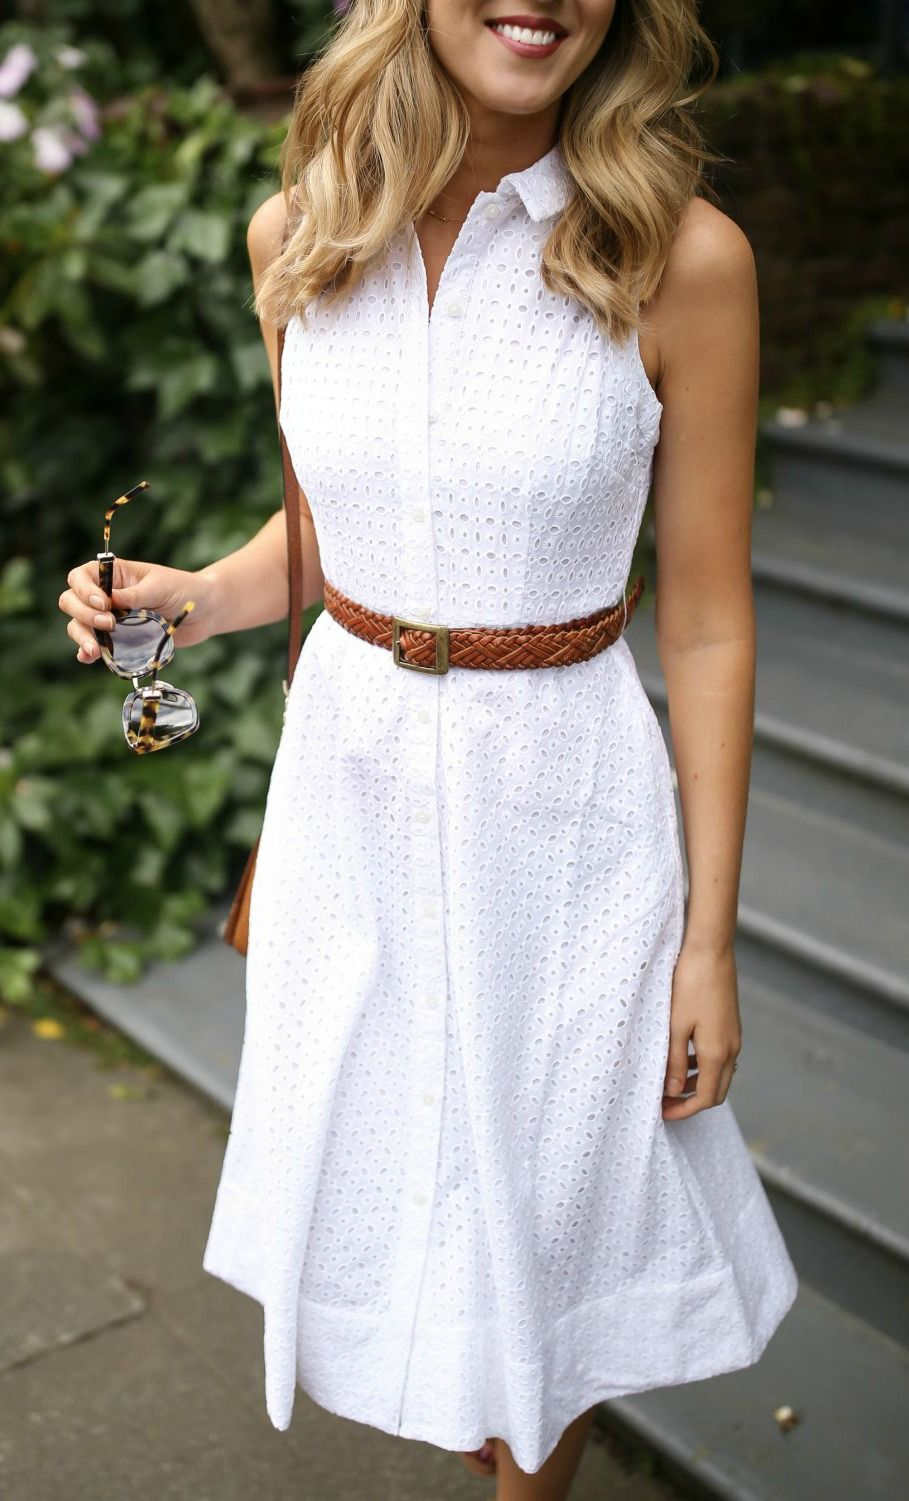 White Eyelet Midi Shirt Dress Sundress With Brown Slides Boden Marc Jacobs Hinge Matisse Classic Style Summer St Fashion Dress Outfits White Eyelet Dress [ 1501 x 909 Pixel ]